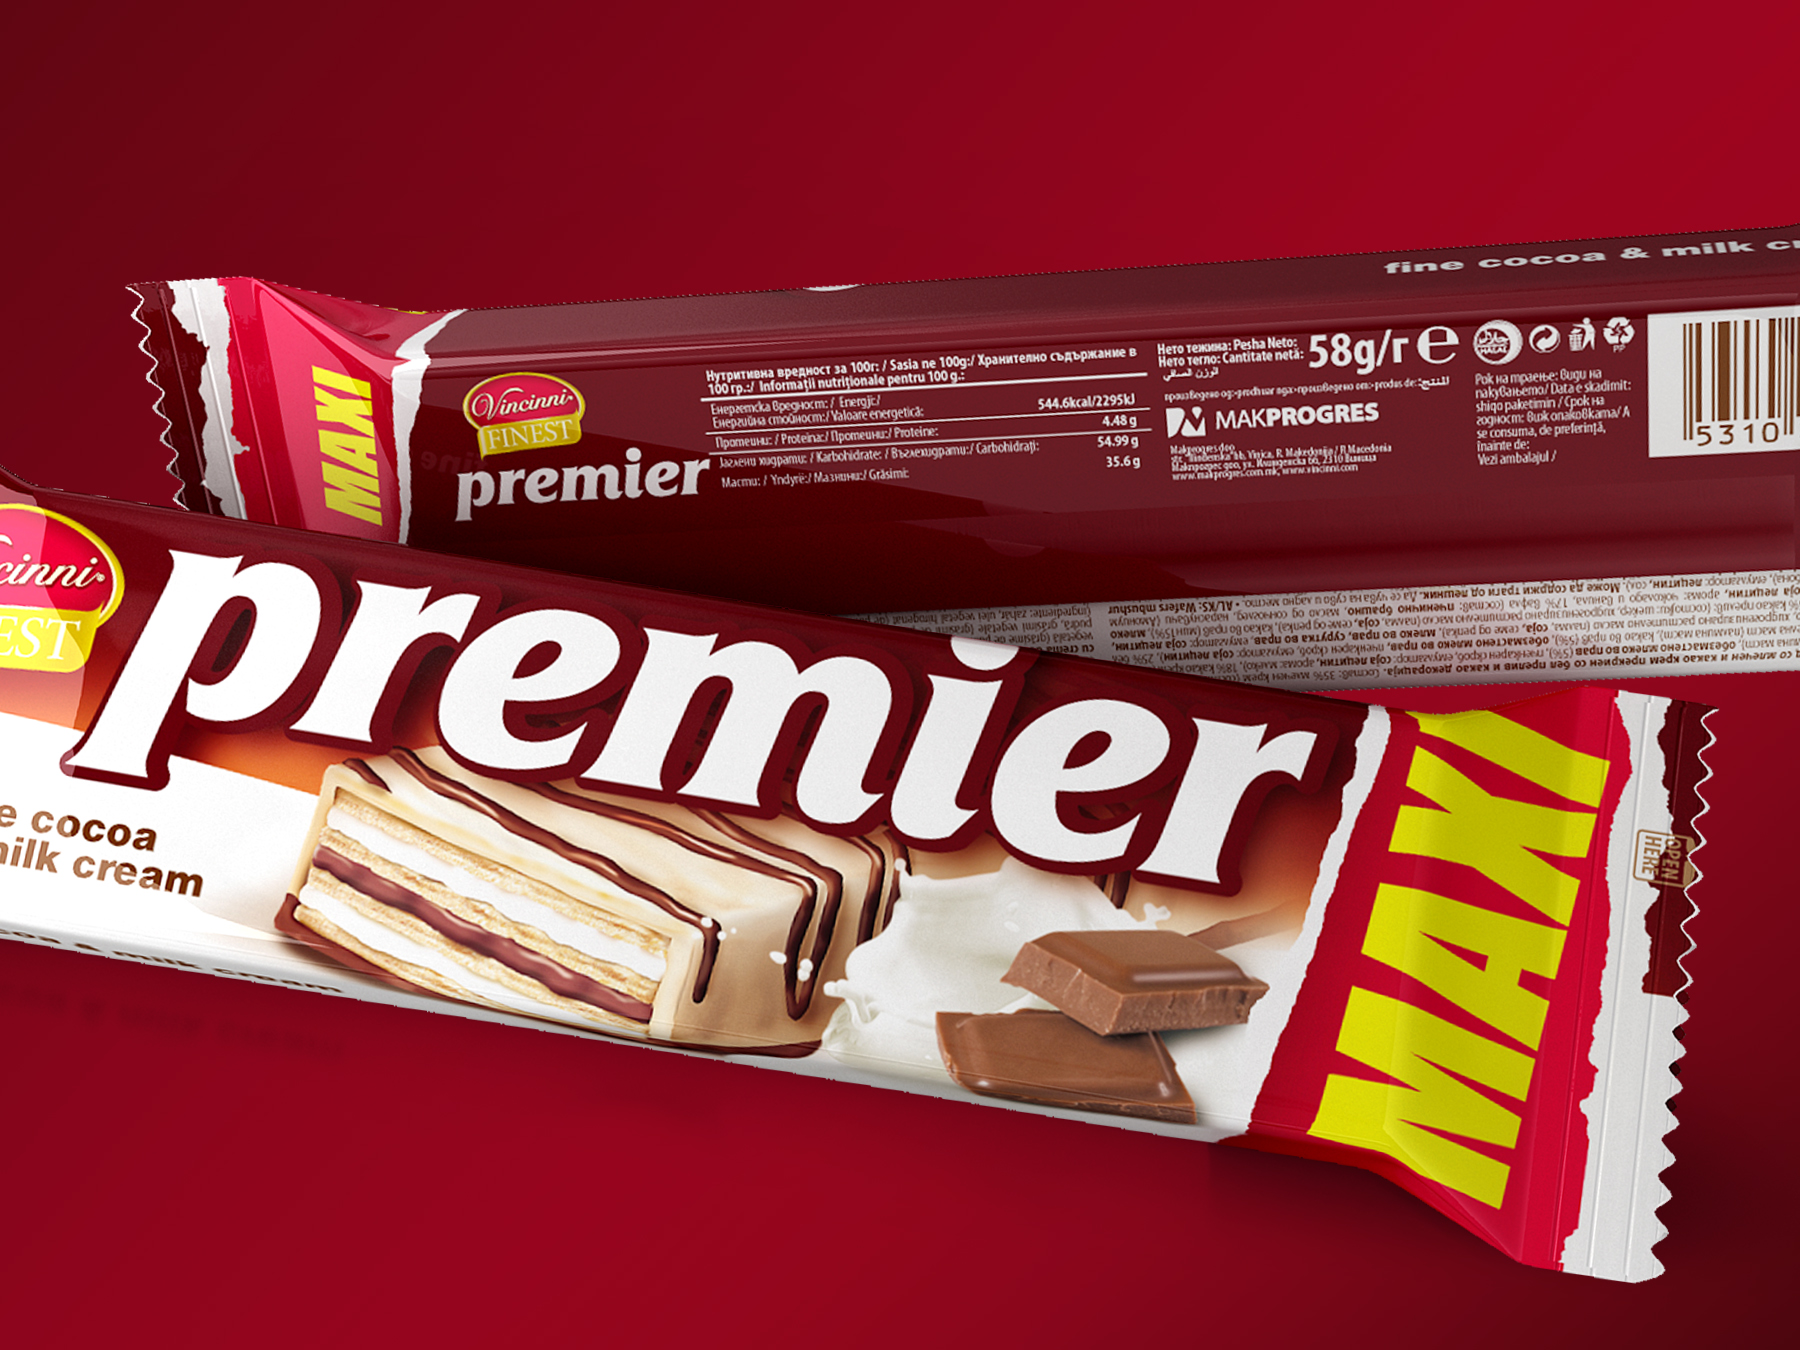 Premier maxi wafers packaging design. Client: Makprogres